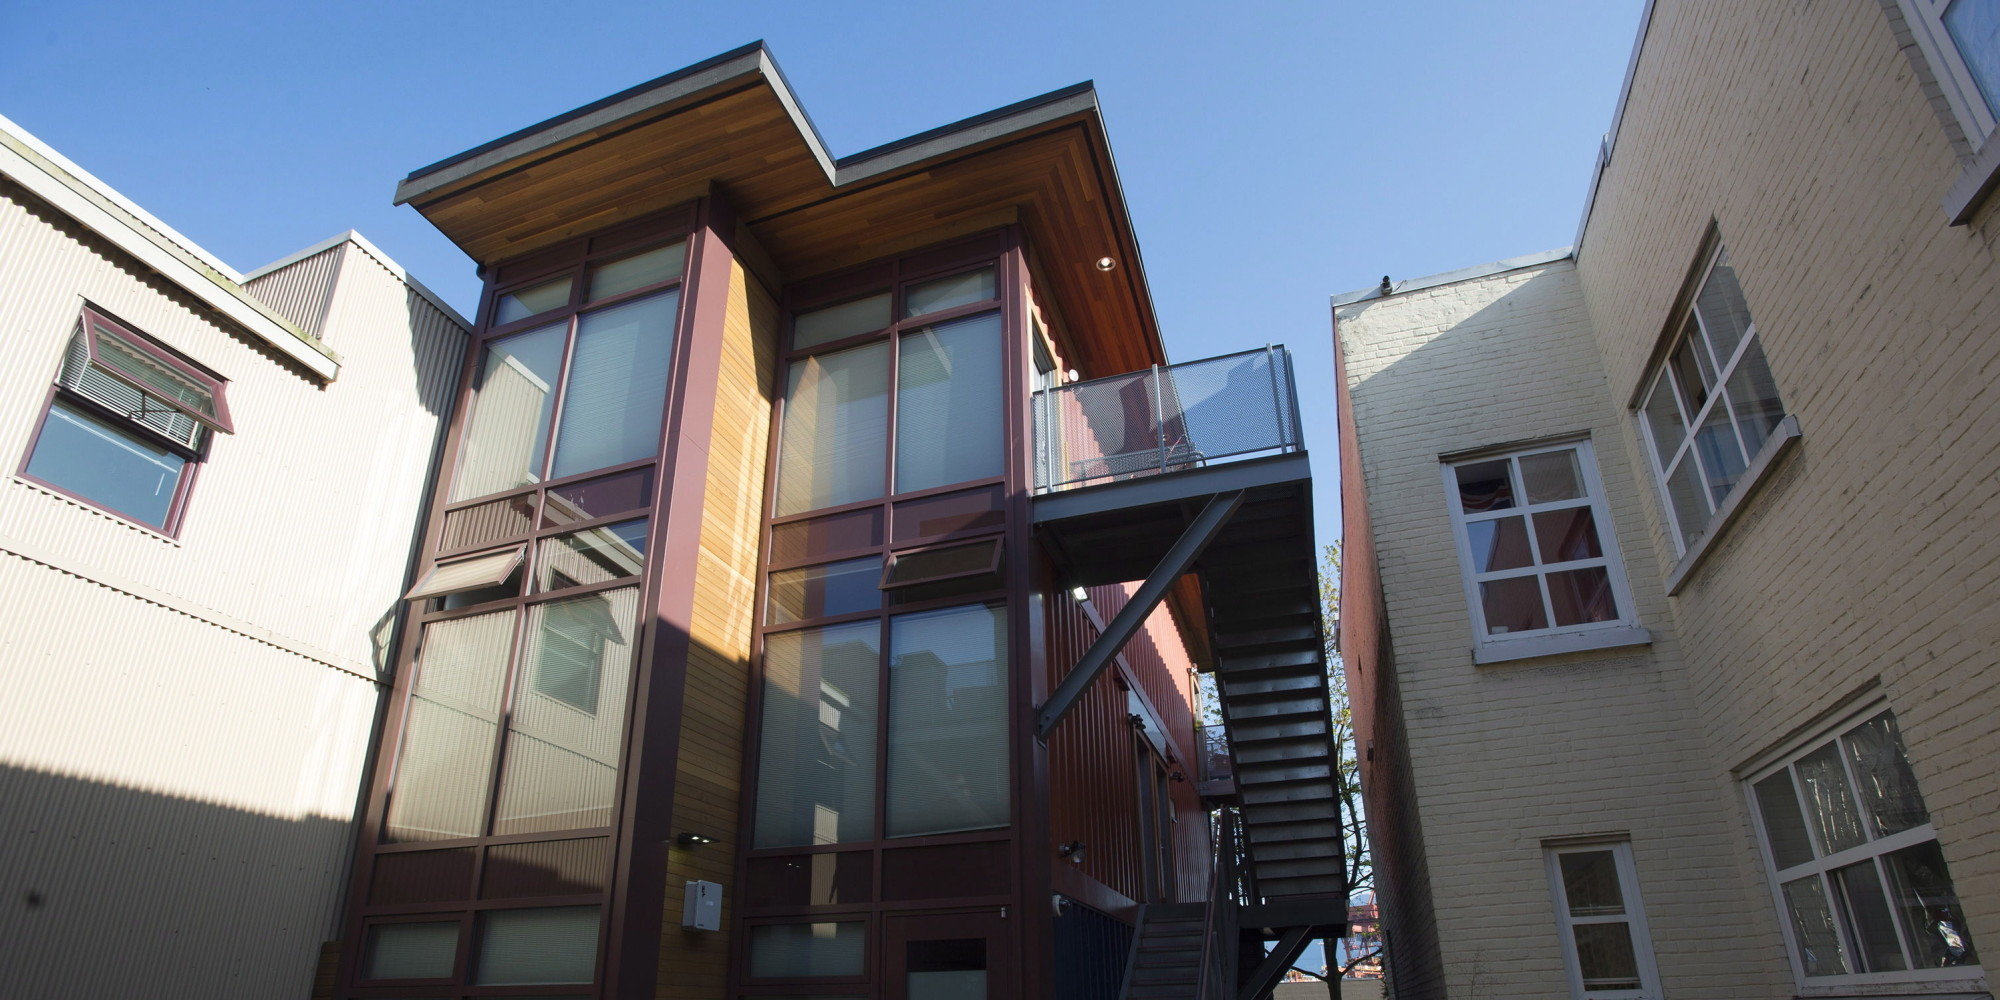 Vancouver Shipping Container Homes Set Example For Rest Of